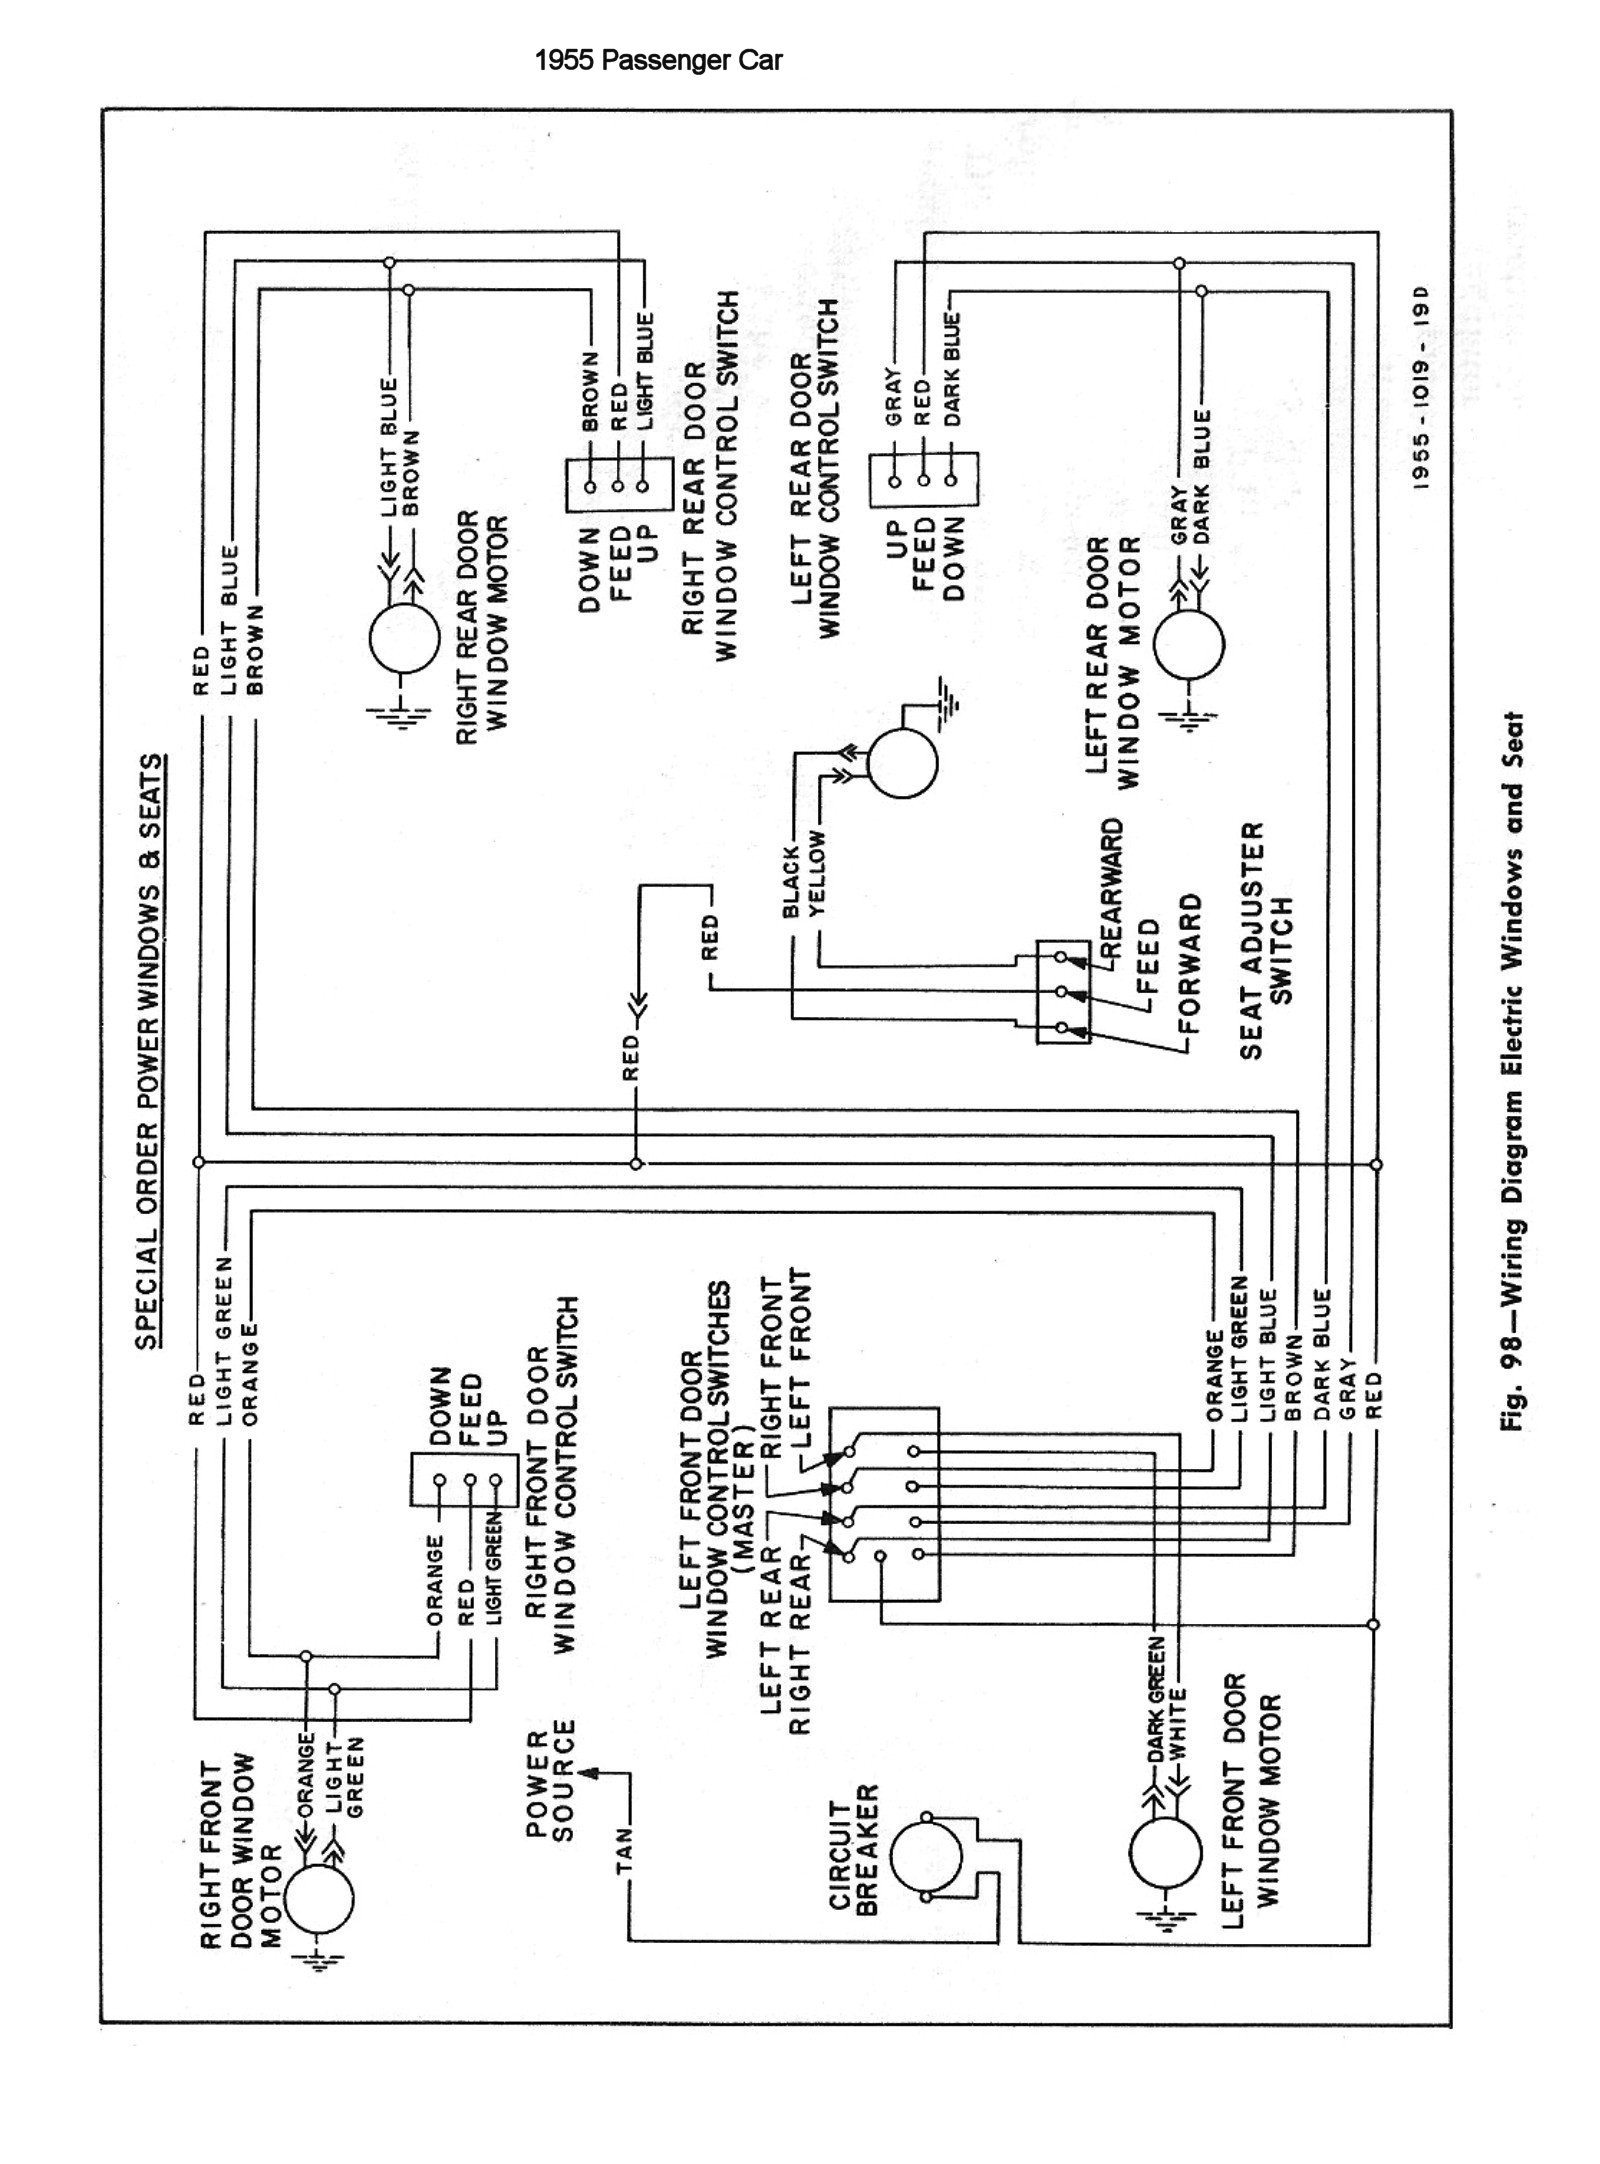 Wiring Diagram For 86 Chevy Truck, Wiring, Get Free Image